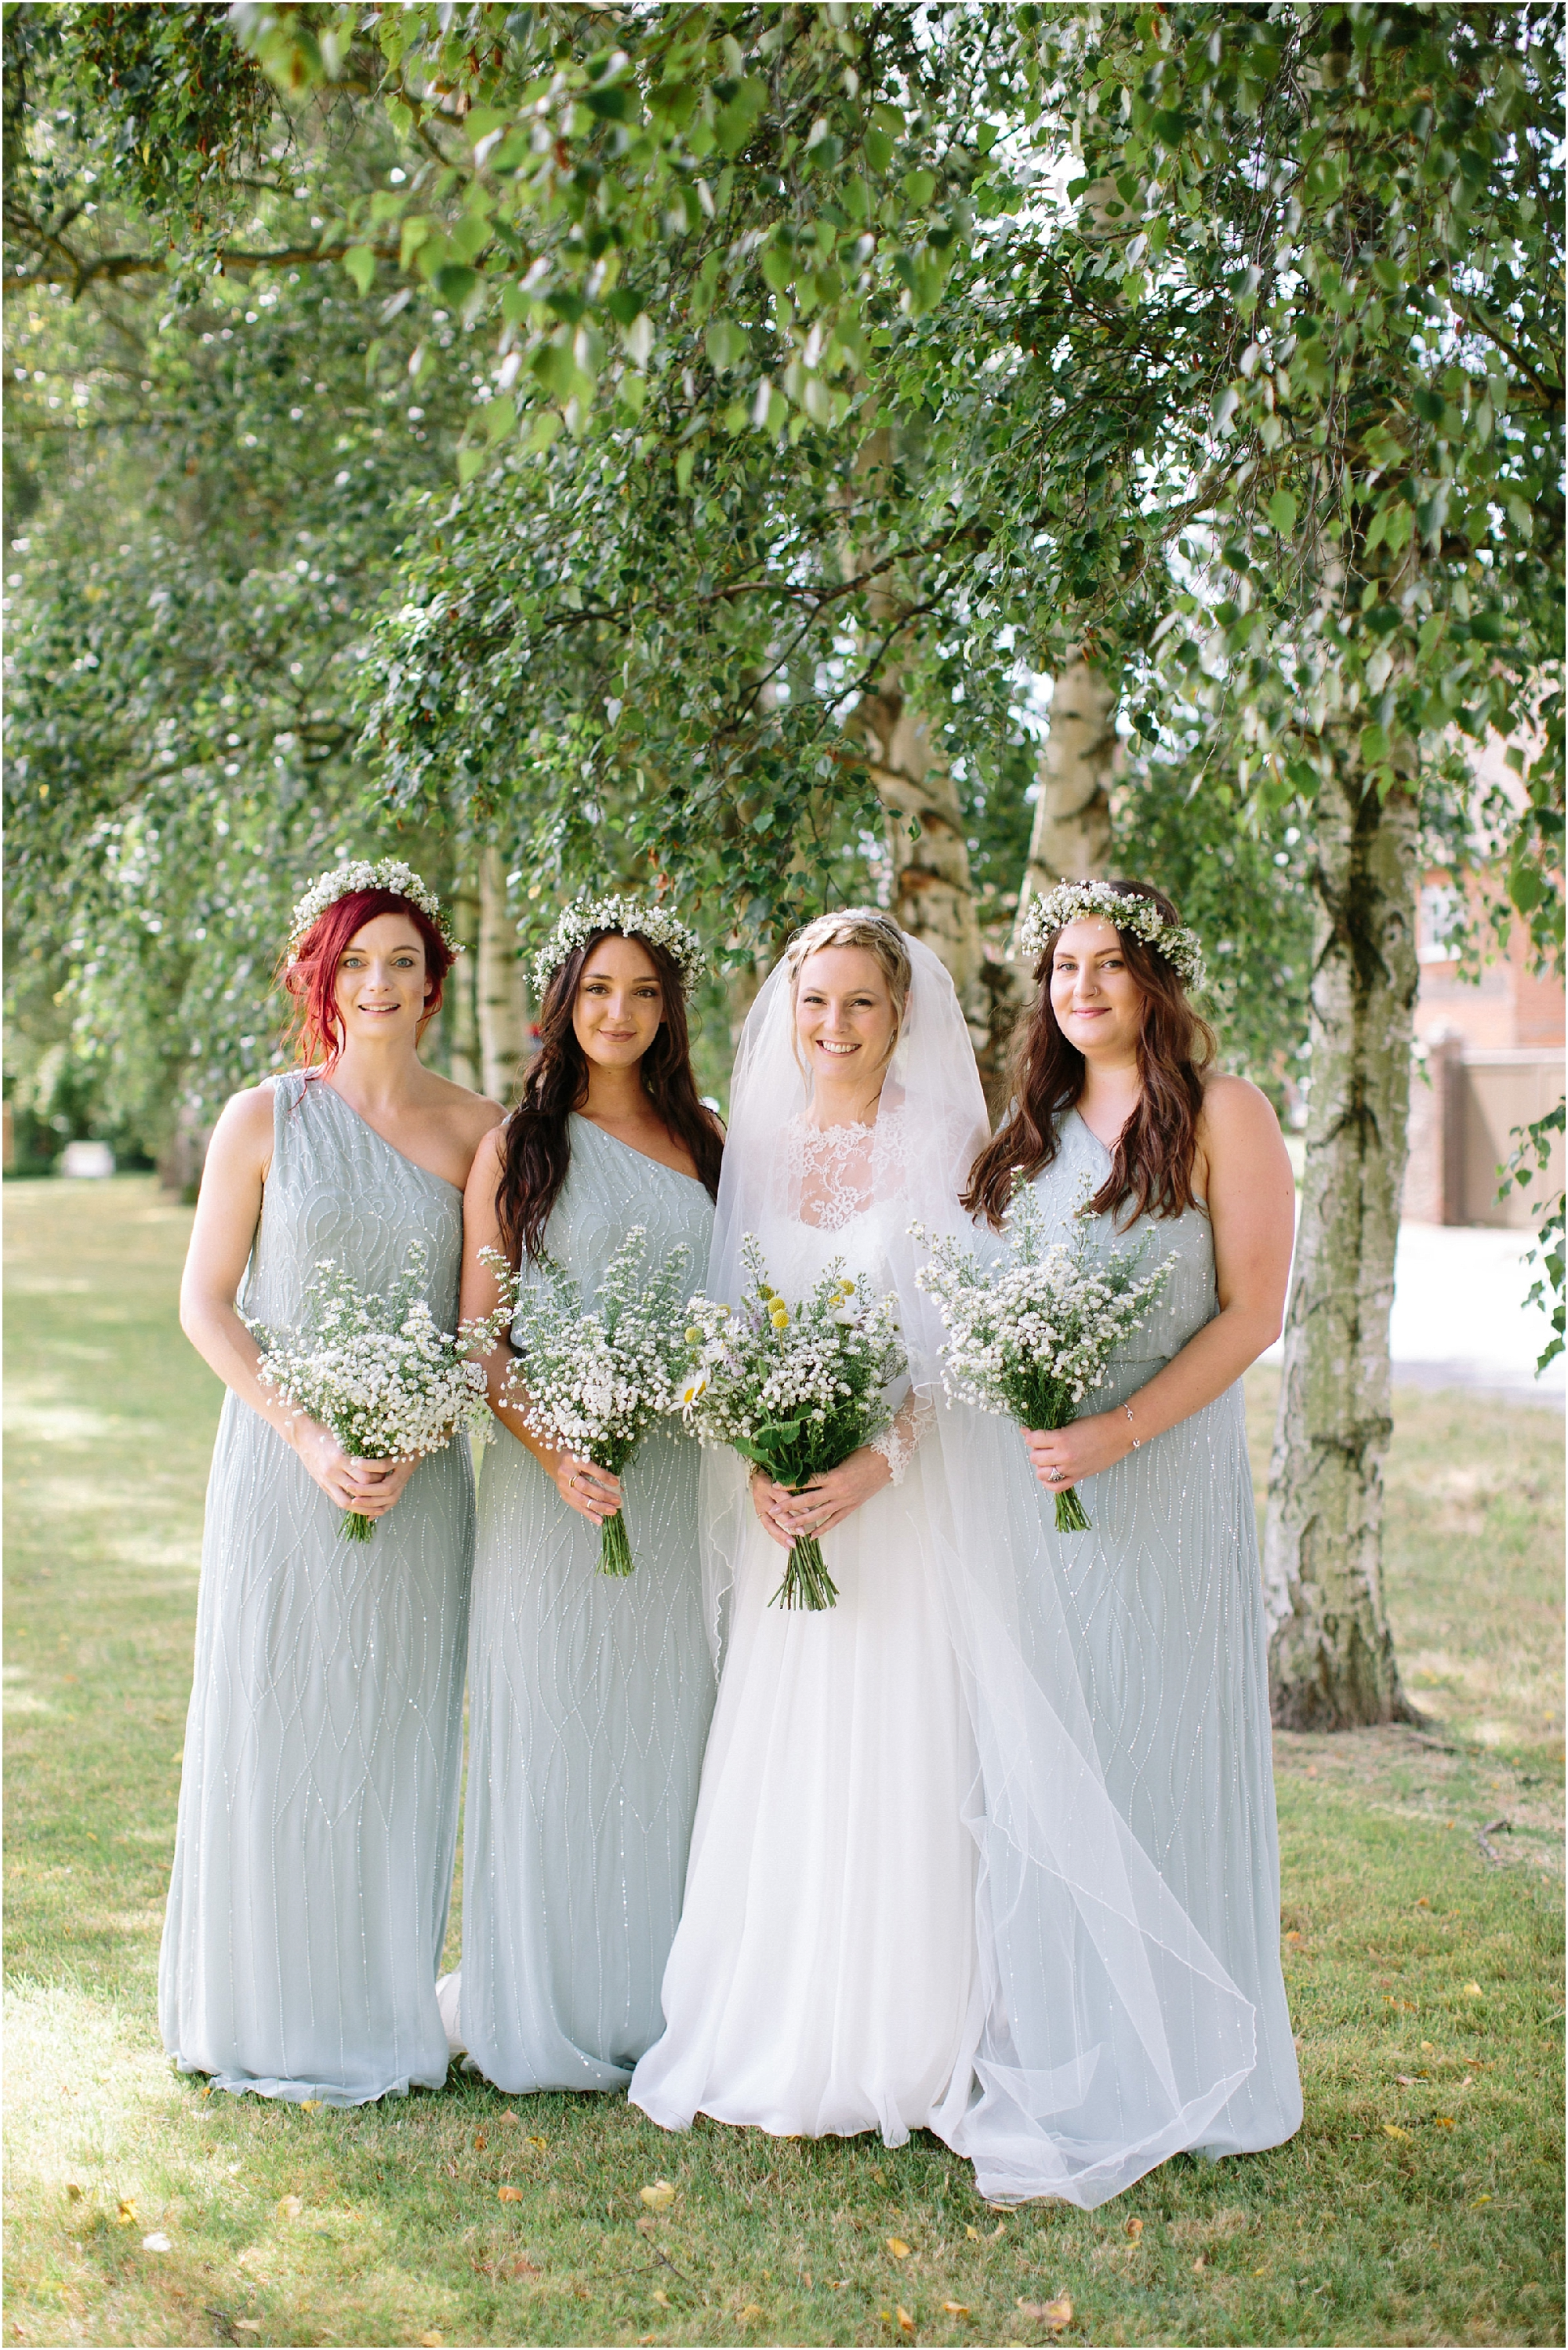 Bridesmaids in mint green beaded dresses